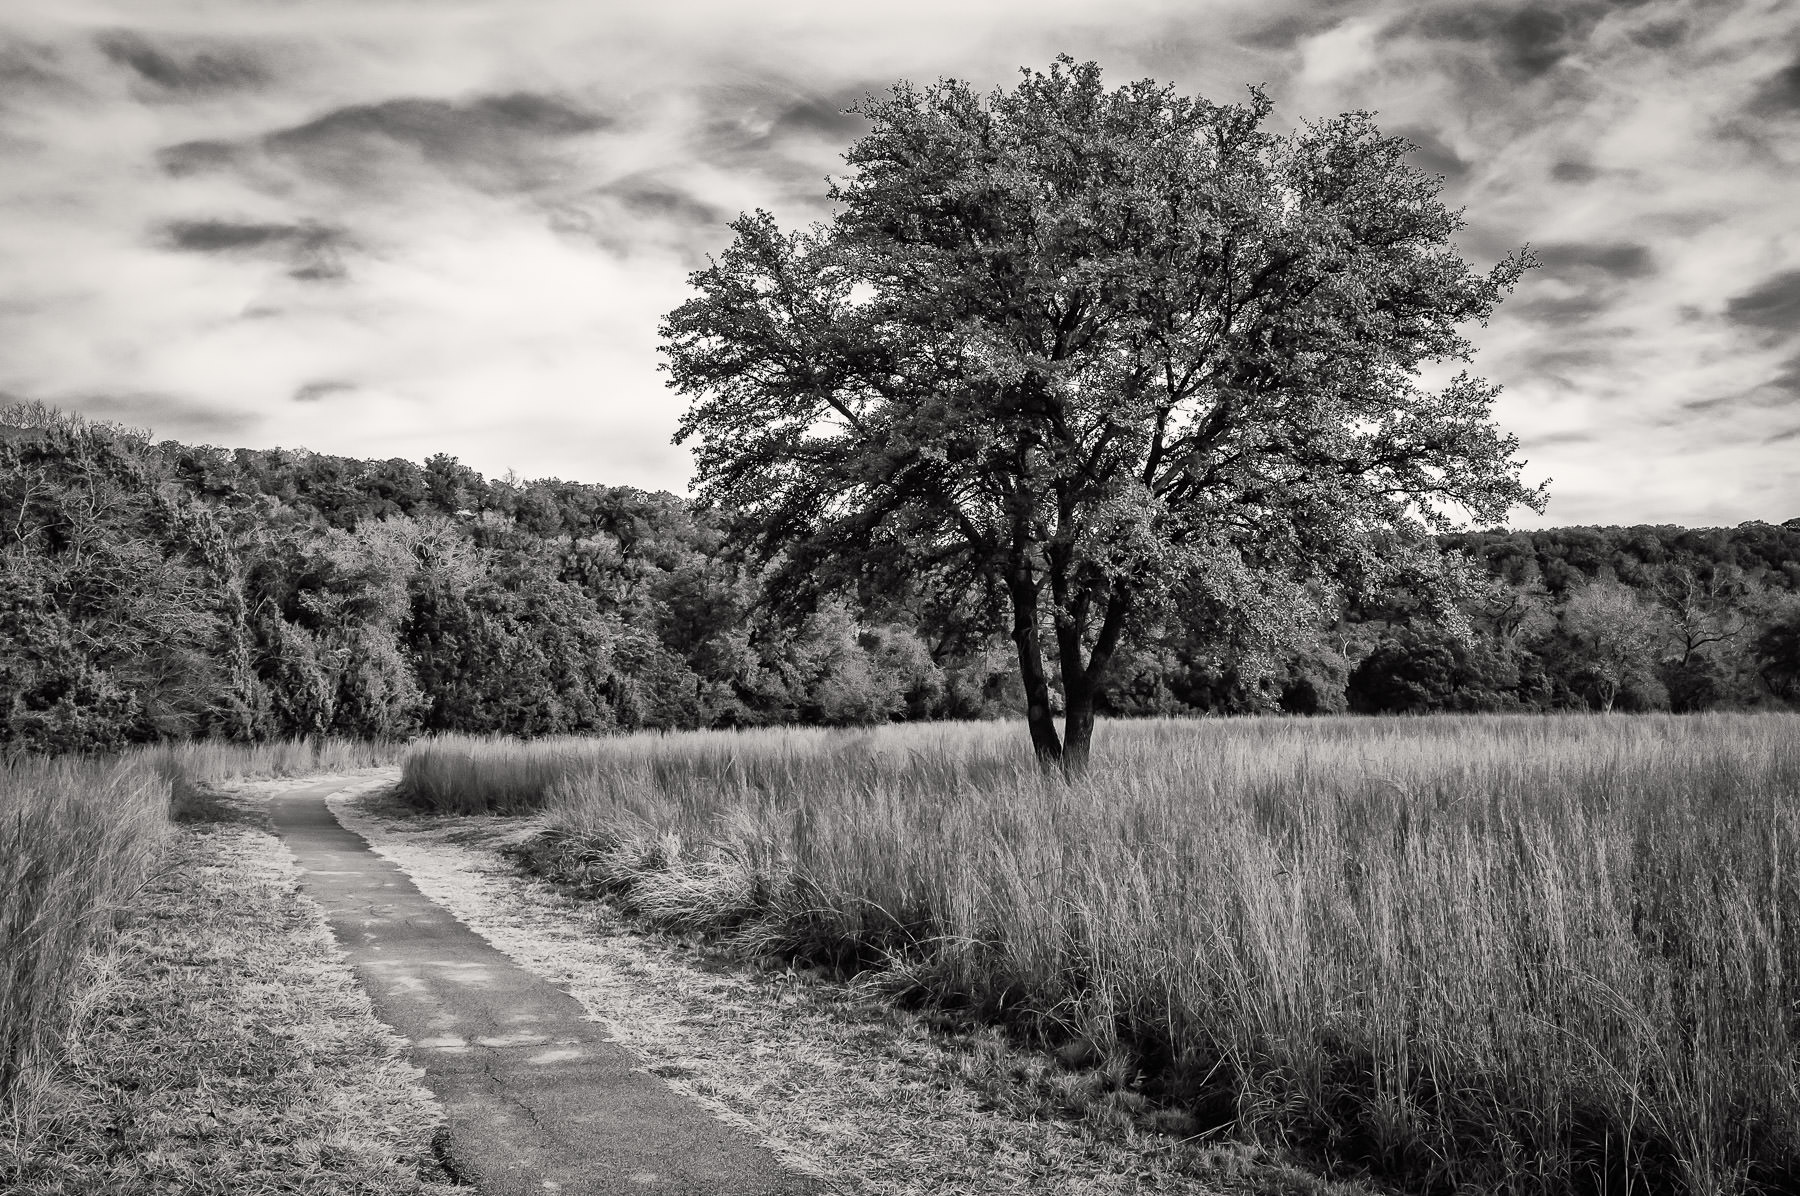 A tree rises from the long grass at Texas' Dinosaur Valley State Park.